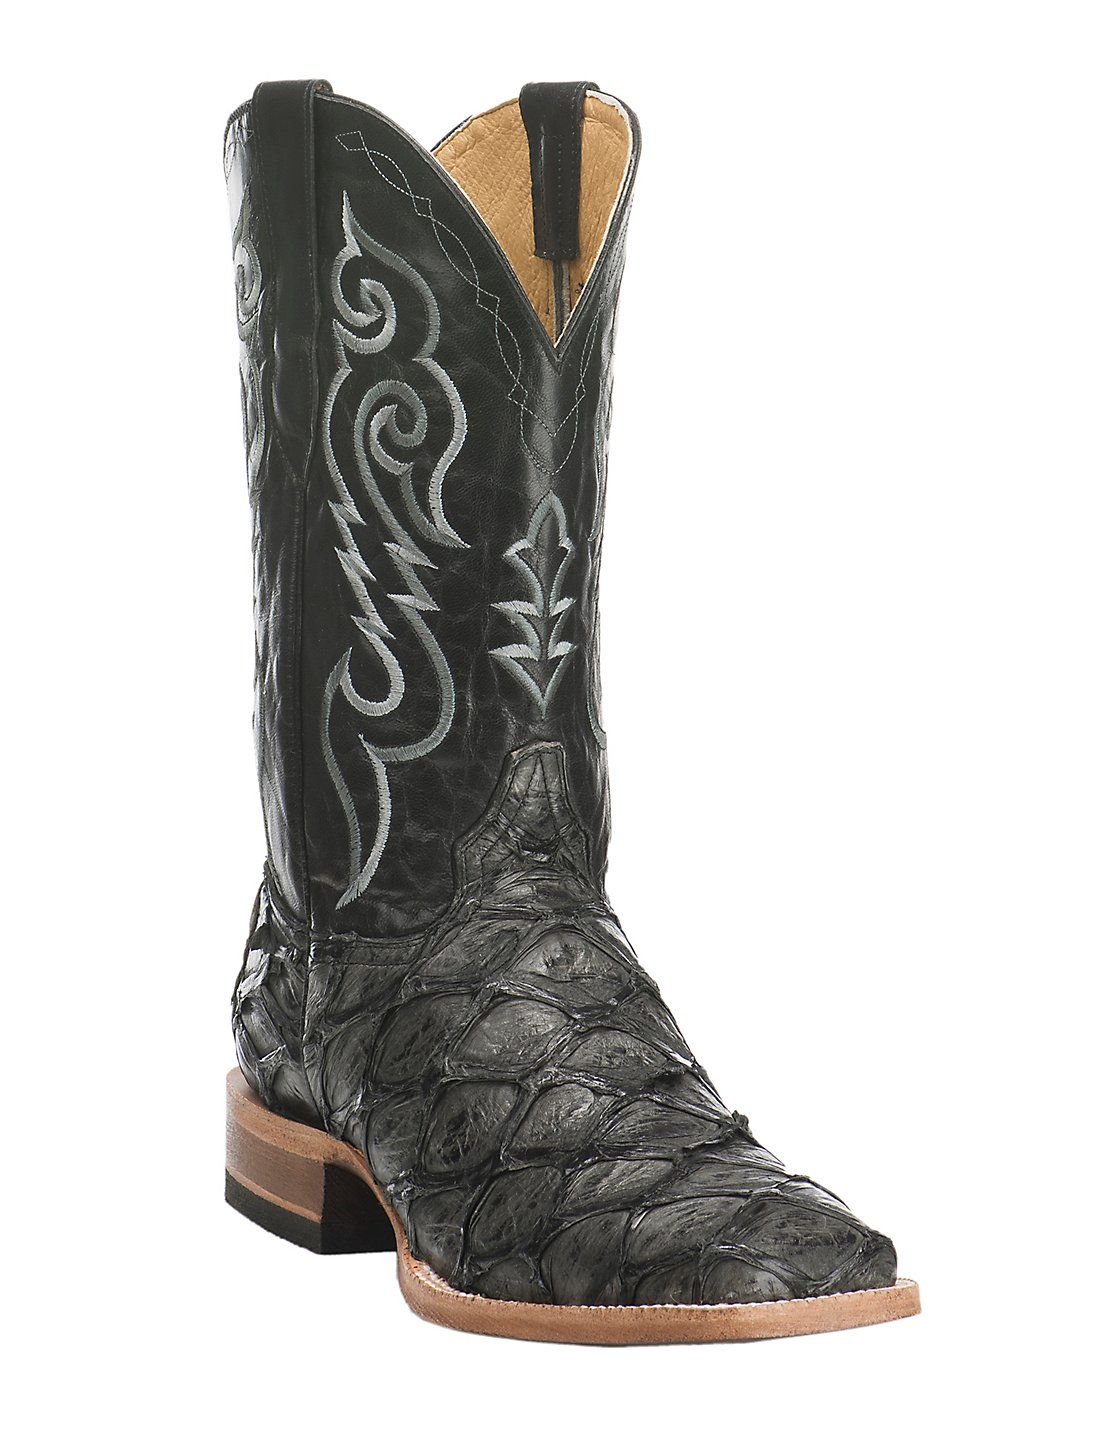 750566c1187 Cavender's Men's Hubbard Black Pirarucu Exotic Square Toe Boots ...